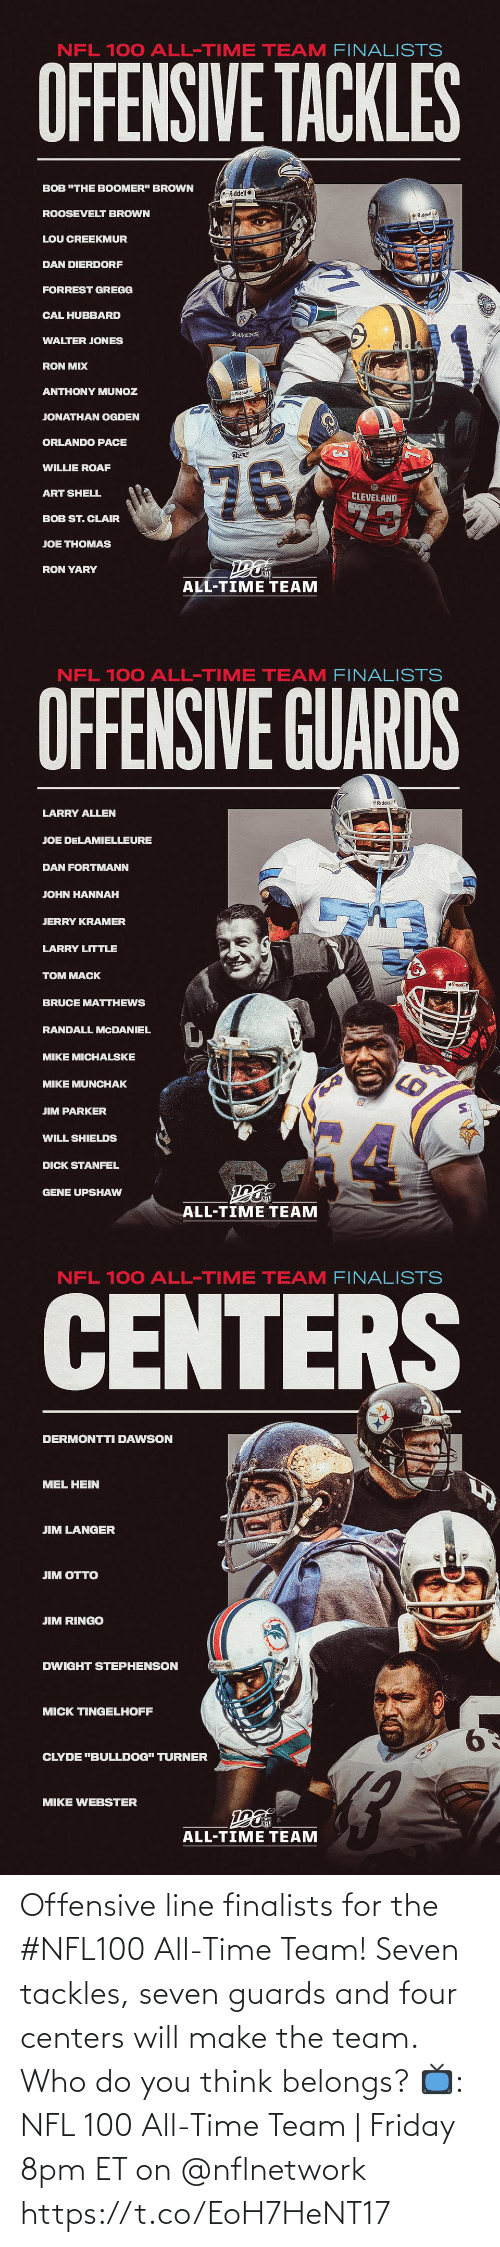 "Rams: NFL 100 ALL-TIME TEAM FINALISTS  OFFENSIVE TACKLES  BOB ""THE BOOMER"" BROWN  Riddel  ROOSEVELT BROWN  O Riddell  LOU CREEKMUR  DAN DIERDORF  FORREST GREGG  CAL HUBBARD  RAVENS  WALTER JONES  RON MIX  ANTHONY MUNOZ  Riddell  JONATHAN OGDEN  ORLANDO PACE  Rams  76  WILLIE ROAF  ART SHELL  CLEVELAND  73  BOB ST. CLAIR  JOE THOMAS  RON YARY  ALL-TIME TEAM   NFL 100 ALL-TIME TEAM FINALISTS  OFFENSIVE GUARDS  Riddel  LARRY ALLEN  JOE DELAMIELLEURE  DAN FORTMANN  JOHN HANNAH  JERRY KRAMER  LARRY LITTLE  TOM MACK  BRUCE MATTHEWS  RANDALL MCDANIEL  MIKE MICHALSKE  MIKE MUNCHAK  JIM PARKER  WILL SHIELDS  DICK STANFEL  GENE UPSHAW  ALL-TIME TEAM   NFL 100 ALL-TIME TEAM FINALISTS  CENTERS  DERMONTTI DAWSON  MEL HEIN  JIM LANGER  ЛM OТTO  JIM RINGO  DWIGHT STEPHENSON  MICK TINGELHOFF  9.  CLYDE ""BULLDOG"" TURNER  MIKE WEBSTER  ALL-TIME TEAM Offensive line finalists for the #NFL100 All-Time Team!  Seven tackles, seven guards and four centers will make the team. Who do you think belongs?  📺: NFL 100 All-Time Team 